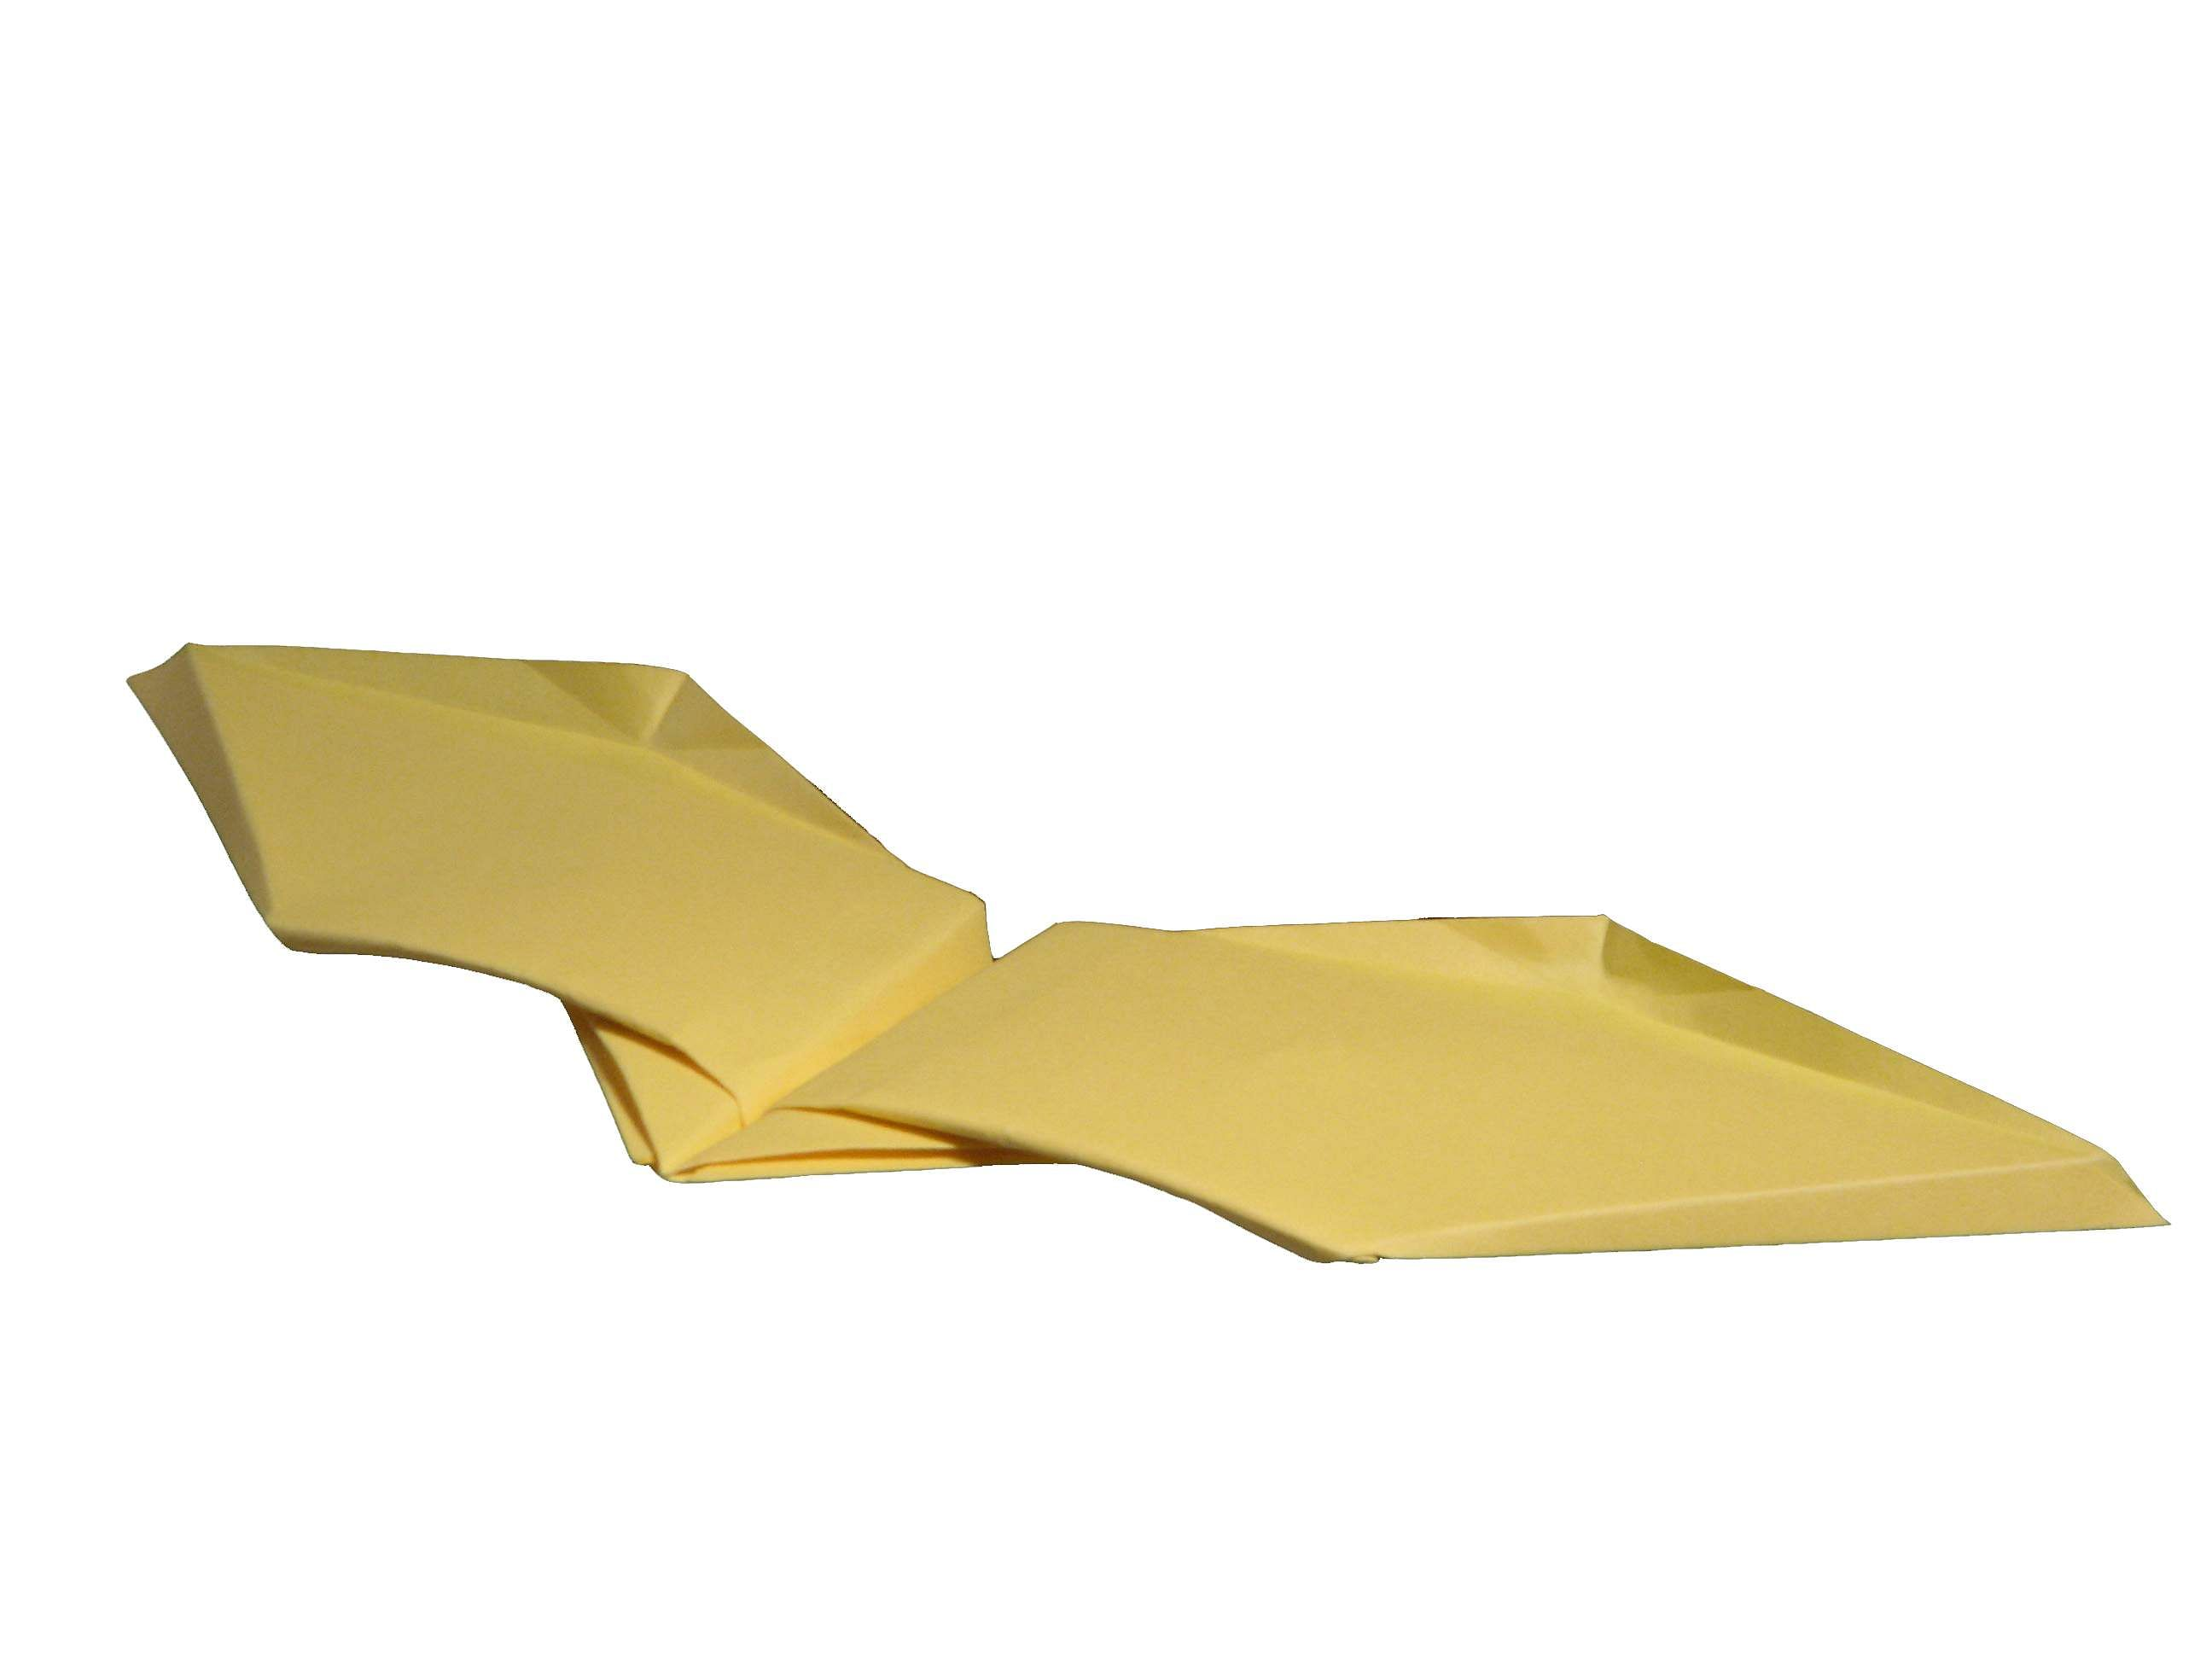 John Collins The Paper Airplane Guy Tells Us Why You Should Tune Into His Online Workshops Soon Edexlive